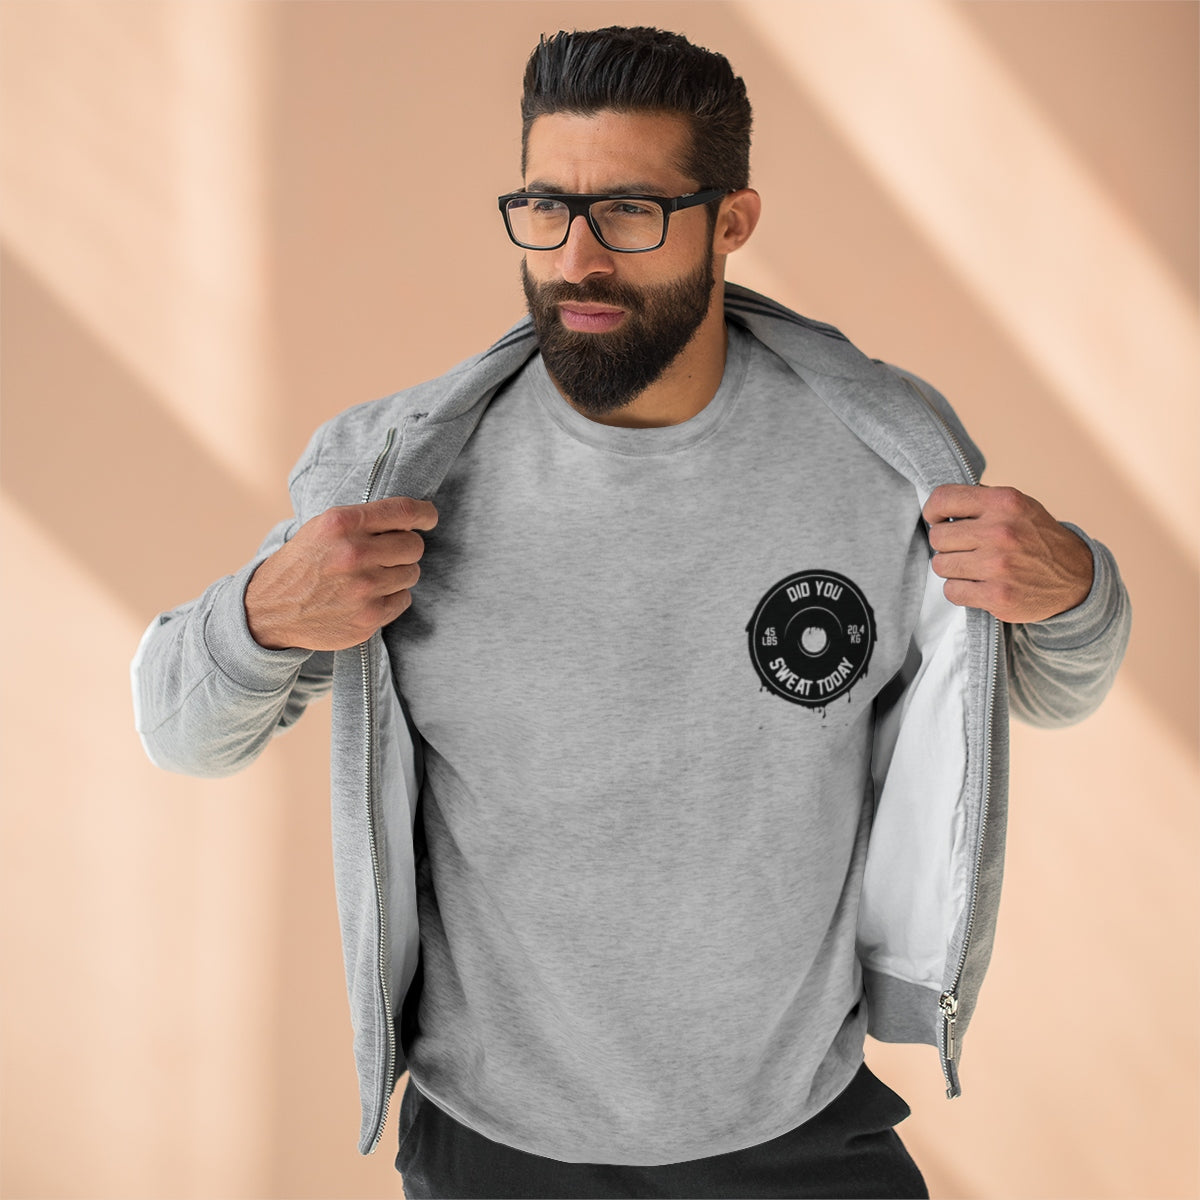 Did You Sweat Today - Unisex Premium Crewneck Sweatshirt